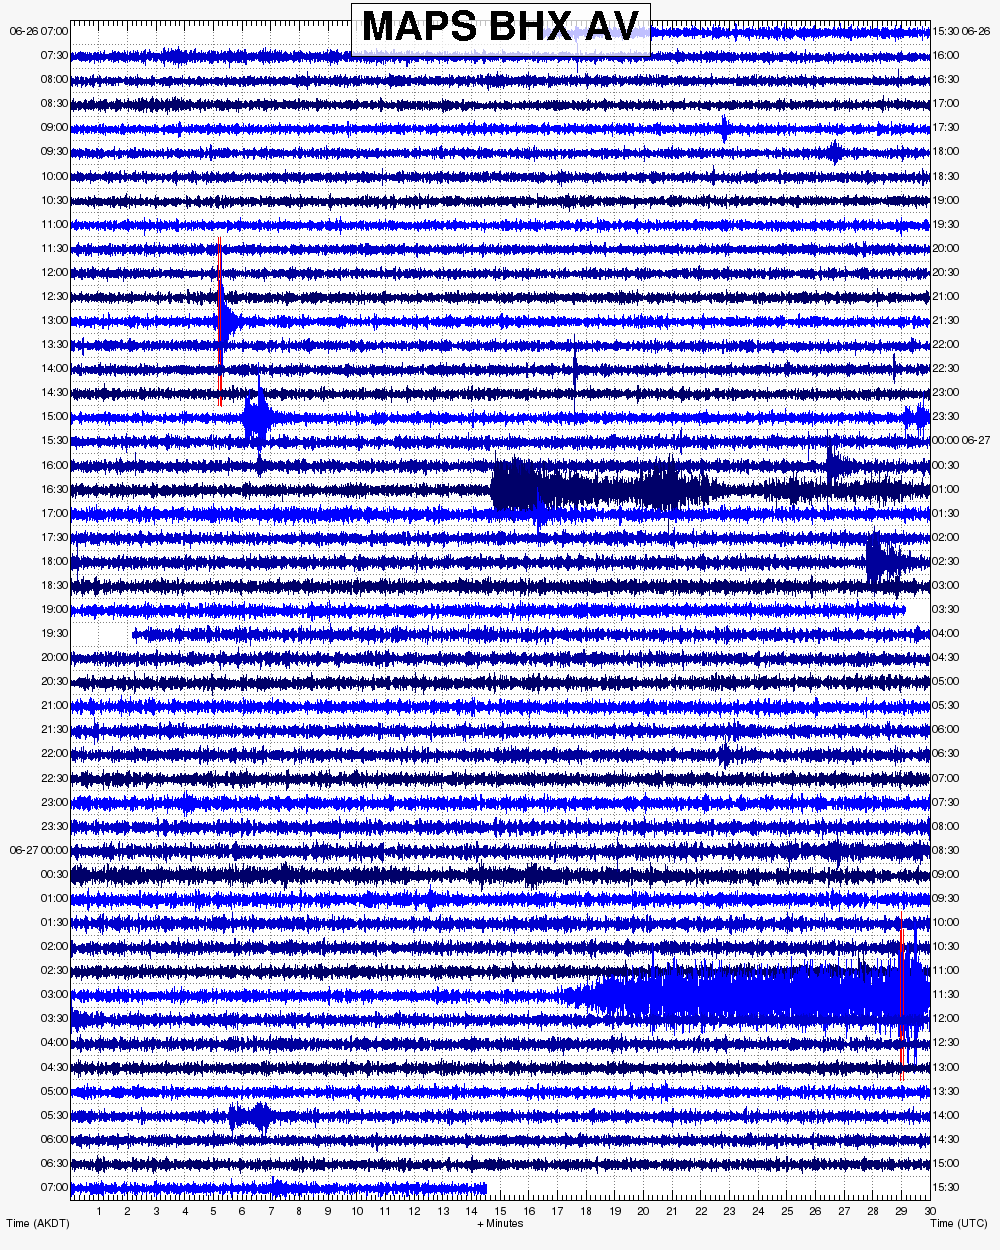 Bogoslof - sismo of 26-27.06.2017 with two eruptive episodes - Doc. AVO